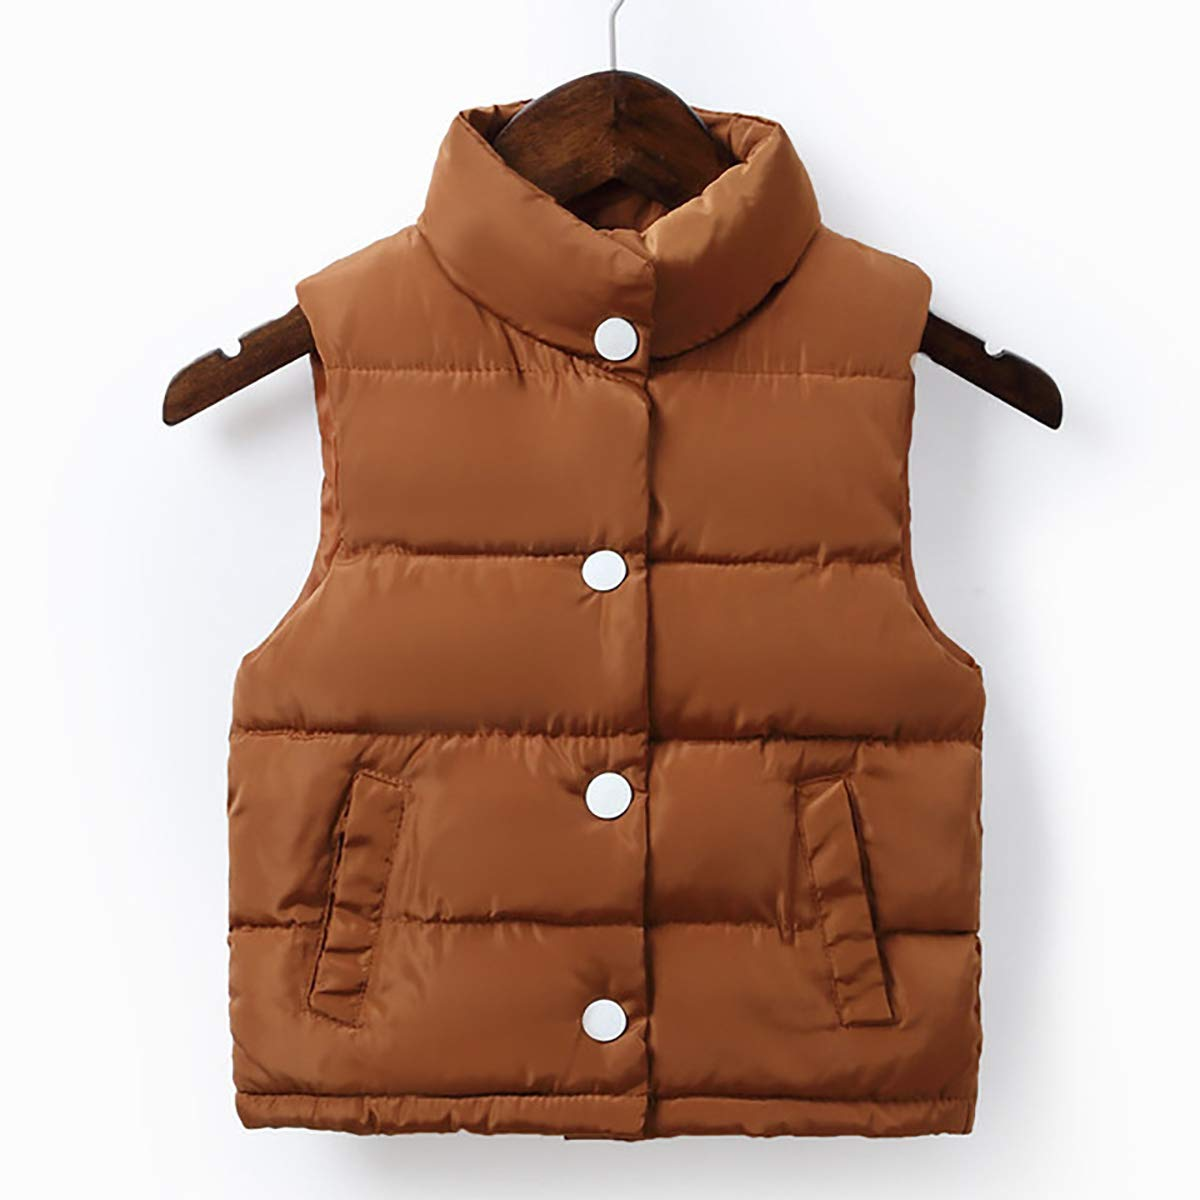 FASH Baby Girls Boys Warm Waistcoat Kids Zipper Closure Thick Gilet Vest Sleeveless Jackets Outwear for 2-6Years,Brown,120cm by FASH